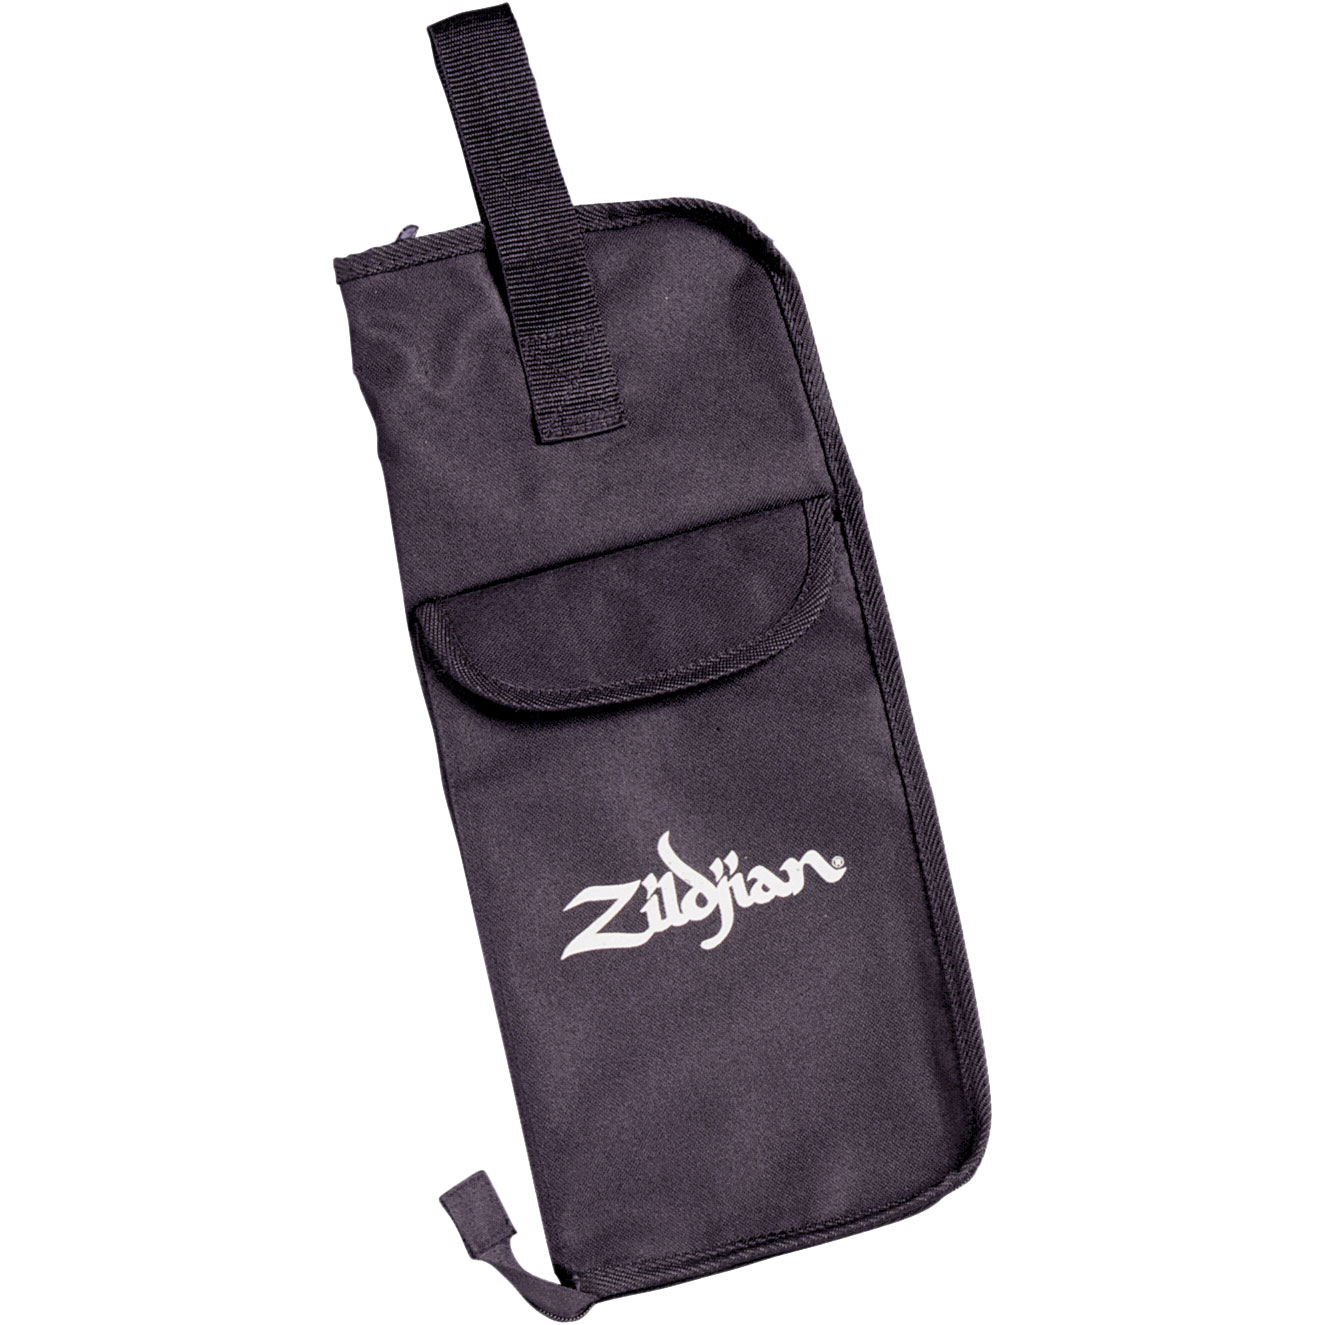 Zildjian Basics II Stick Bag